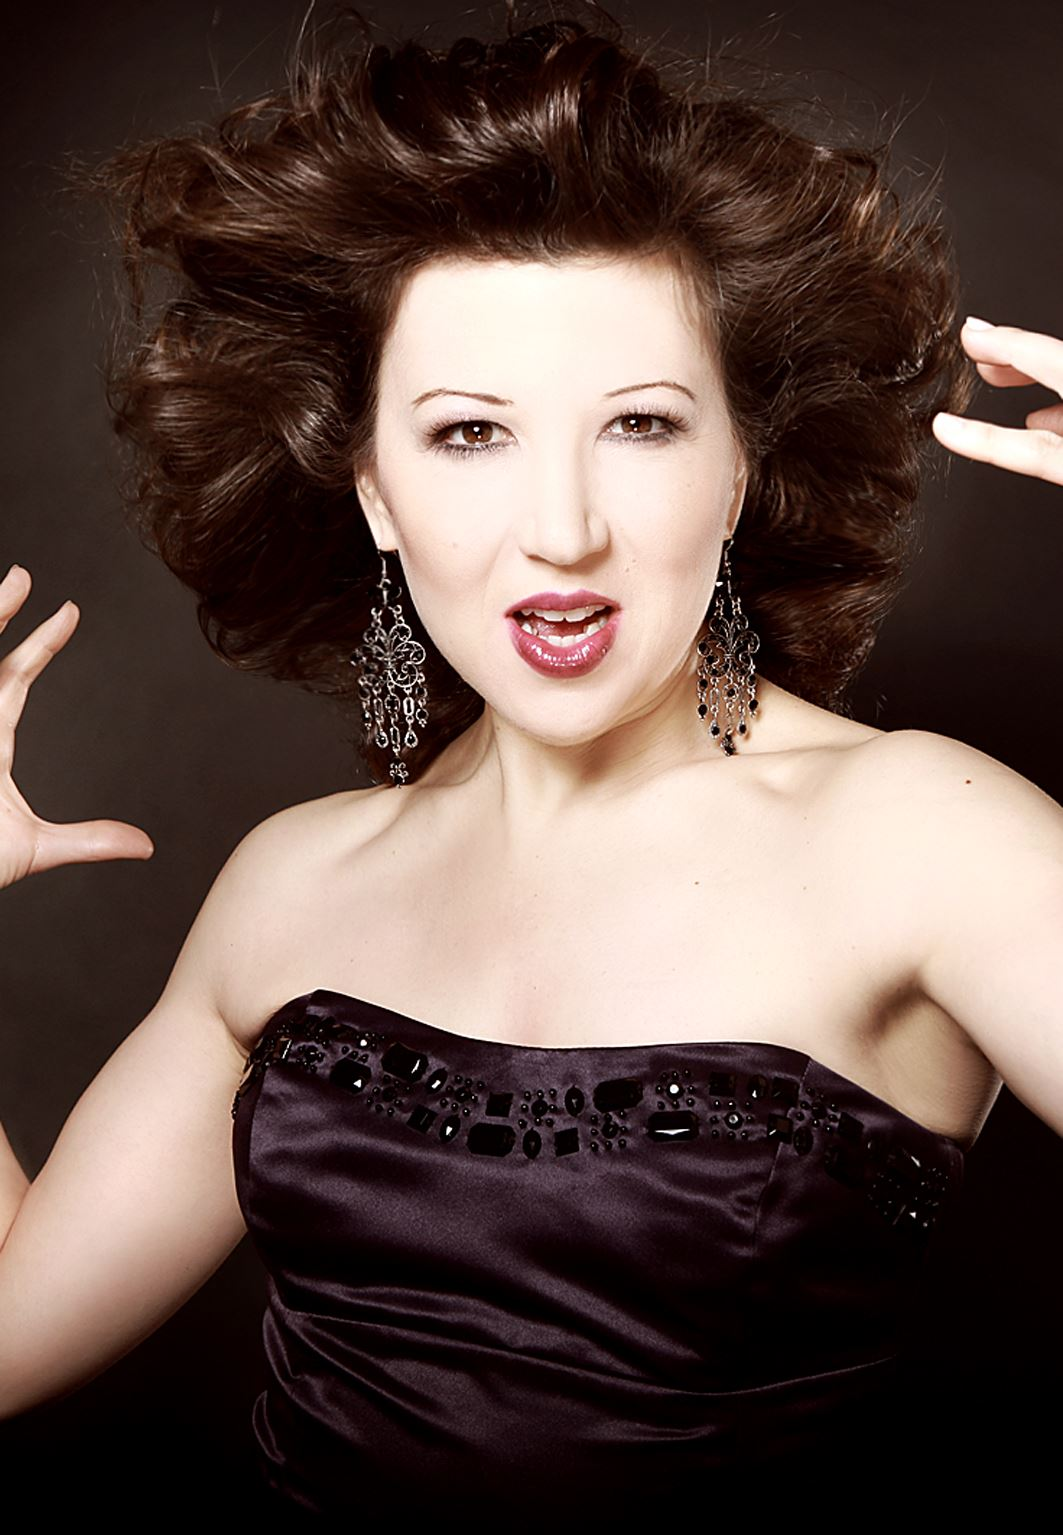 Image of singer in a black strapless gown in front of a black background